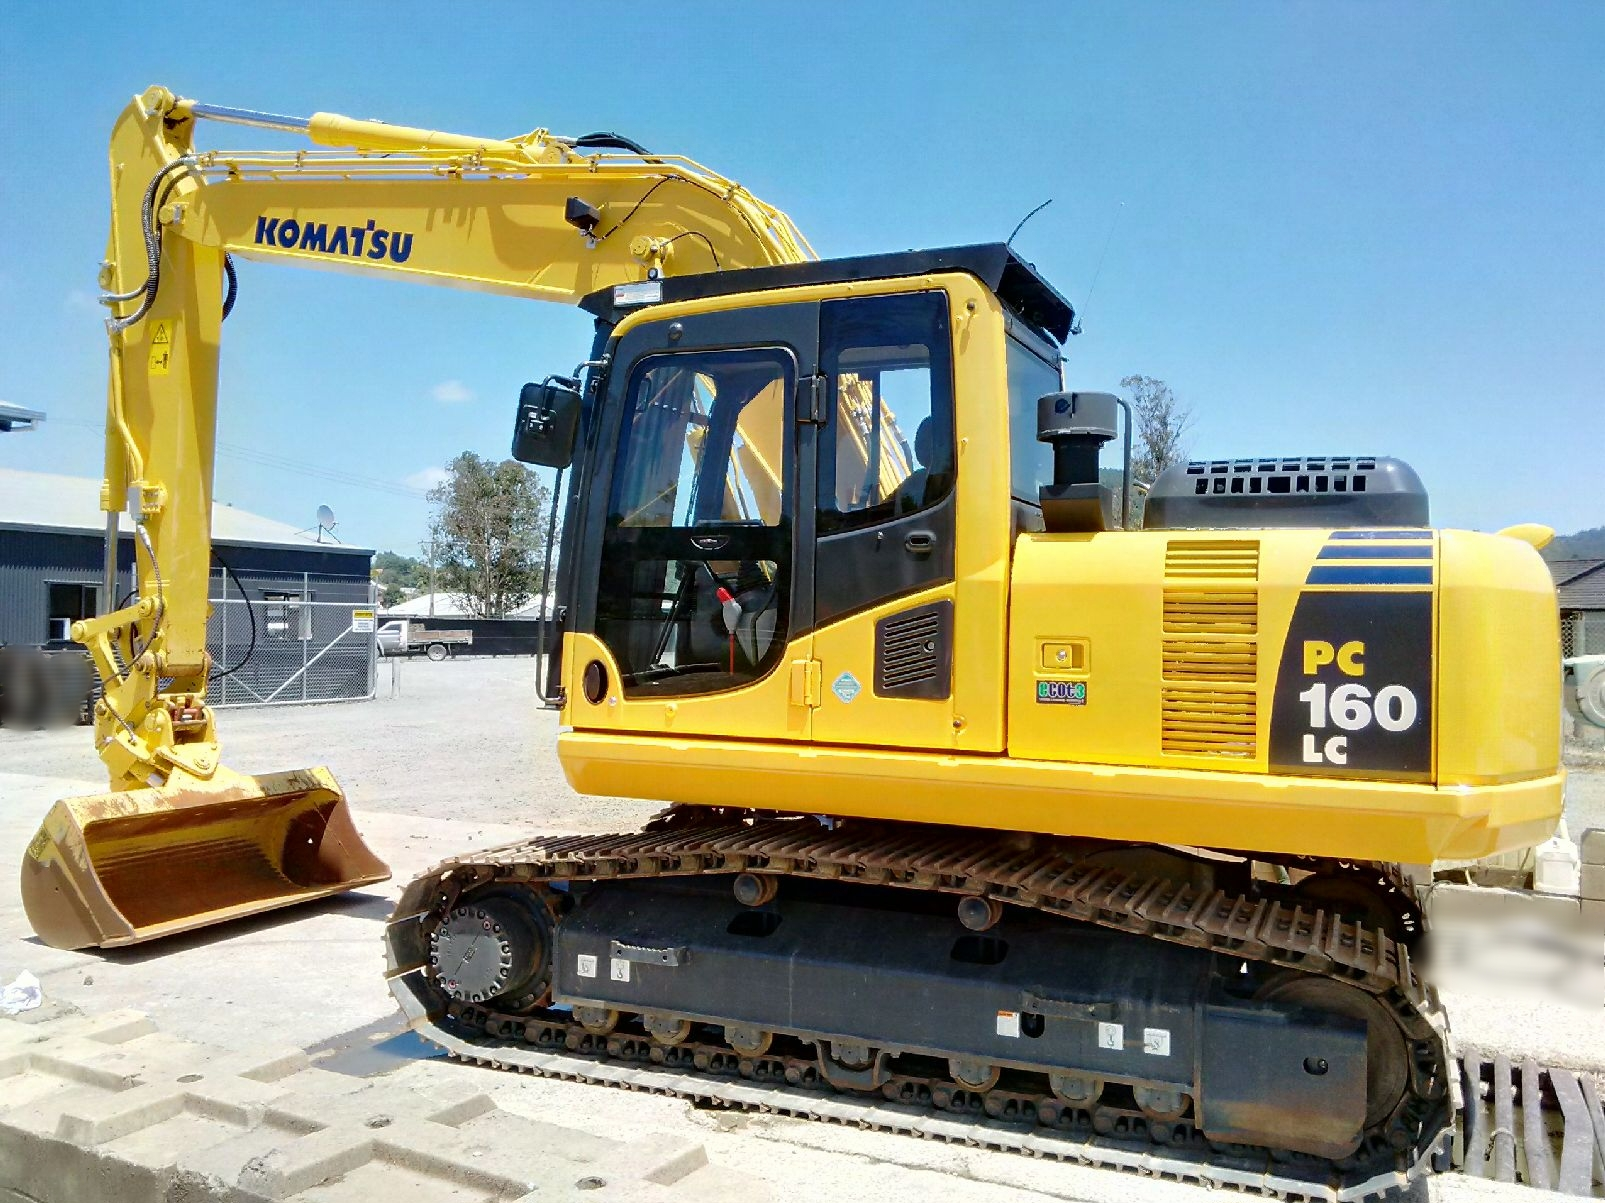 Forestry Guarding package - New OPS front grill, catwalks & marguard windows fitted to Komatsu PC160LC-8